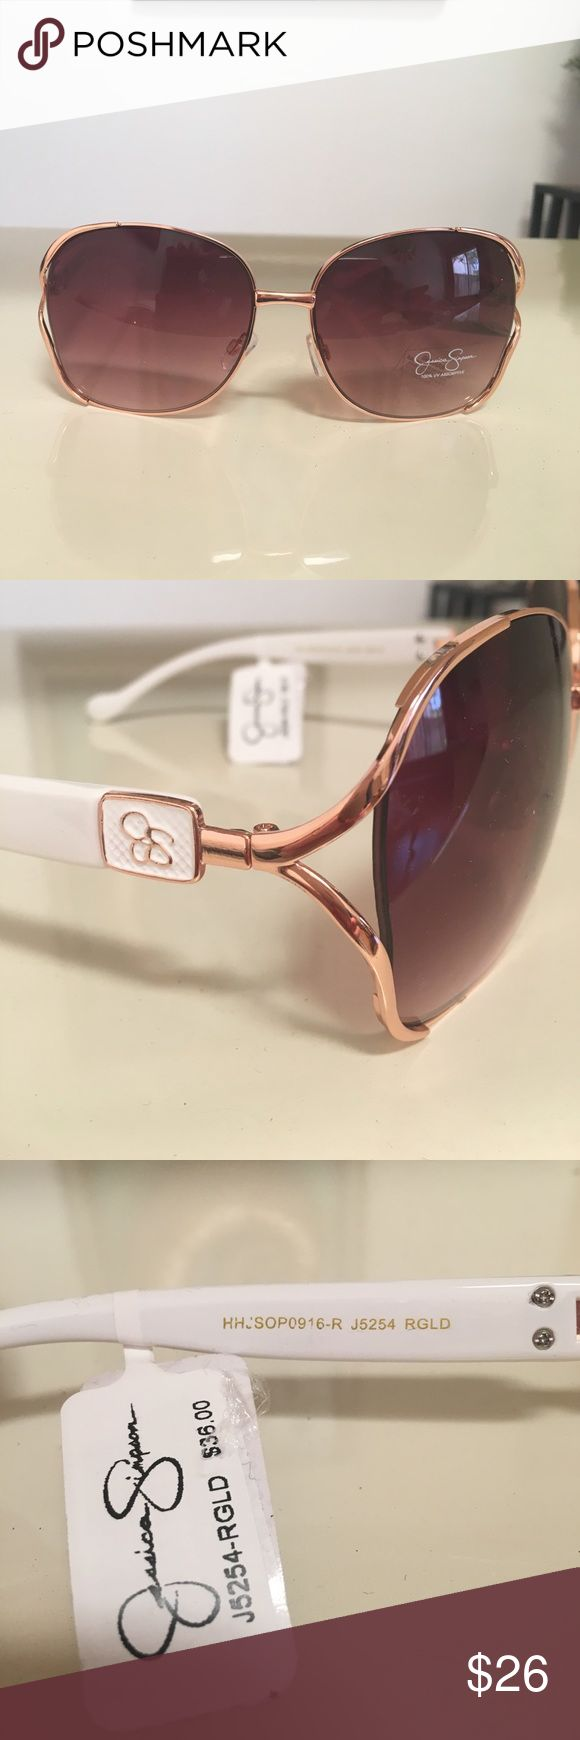 Jessica Simpson Sunglasses J5254-RGLD Jessica Simpson Sunglasses J5254-RGLD SUPER SEXY! Ready for SUMMER!     ‼️‼️‼️NEW WITH TAG‼️‼️‼️‼️ Jessica Simpson Accessories Sunglasses